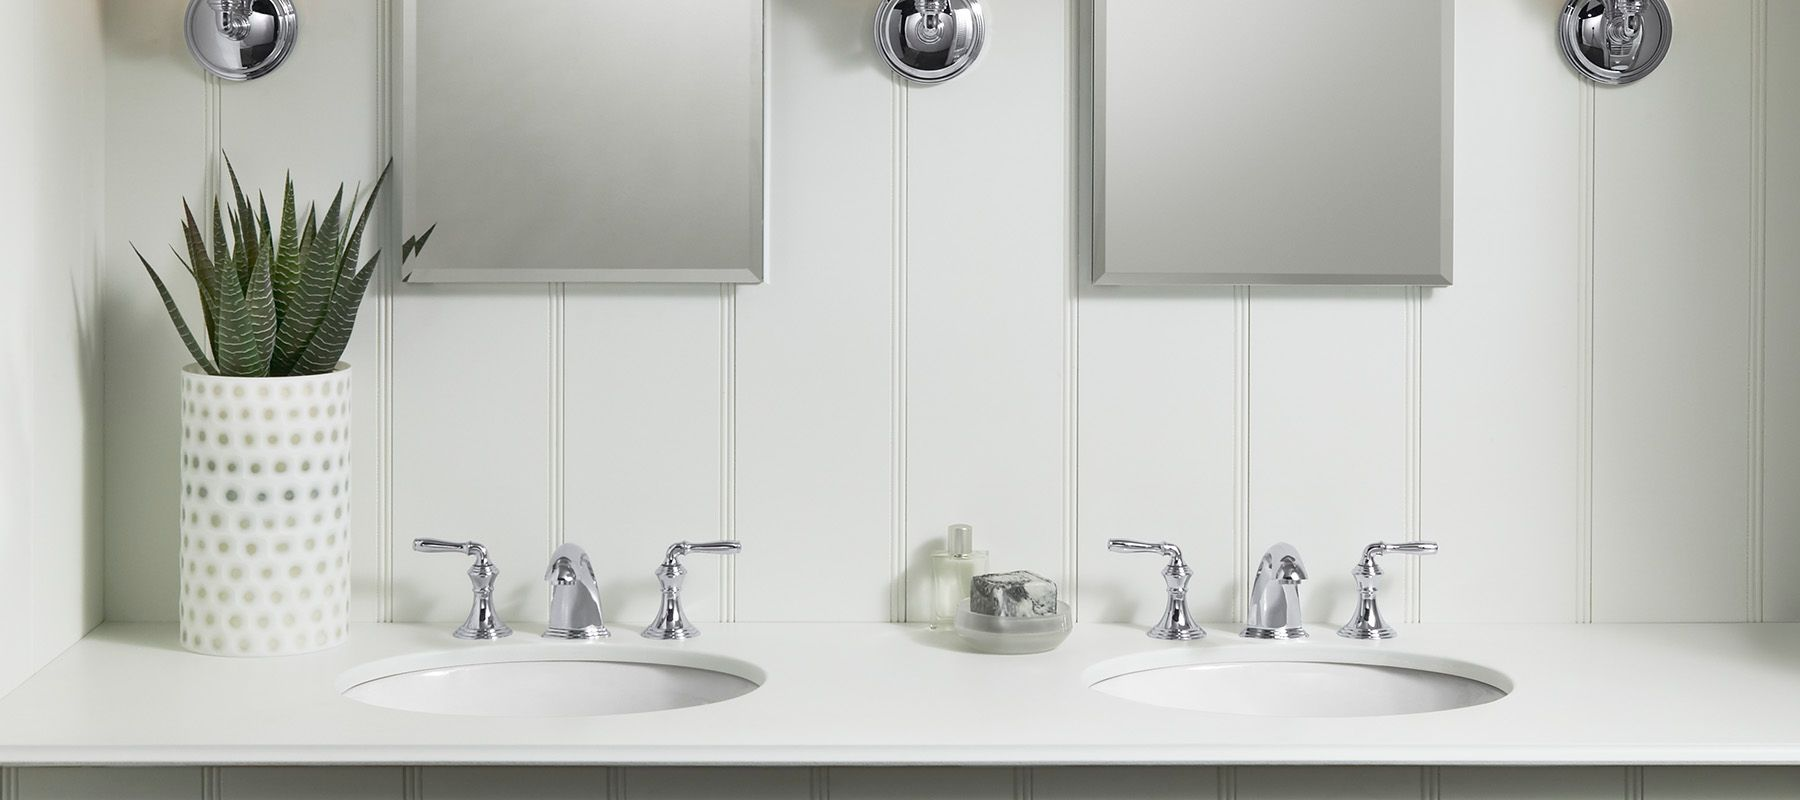 Bathroom Sinks Buying Guide. Under mount Bathroom Sinks   Bathroom   KOHLER